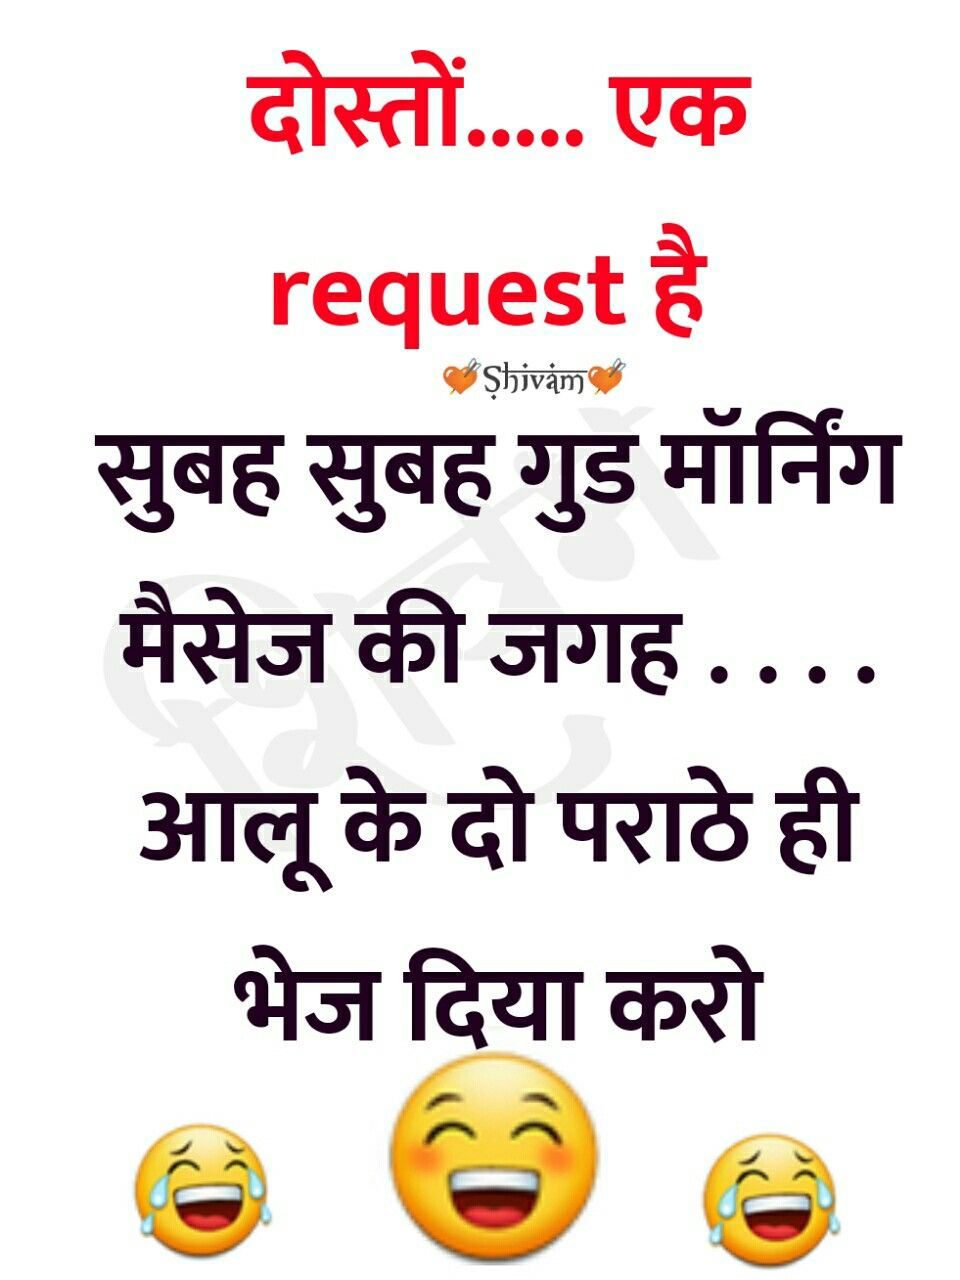 Tere Haat Ka Aalu Faratha Kab Nasib Hoga Good Morning Quotes Morning Quotes Funny Funny Good Morning Quotes